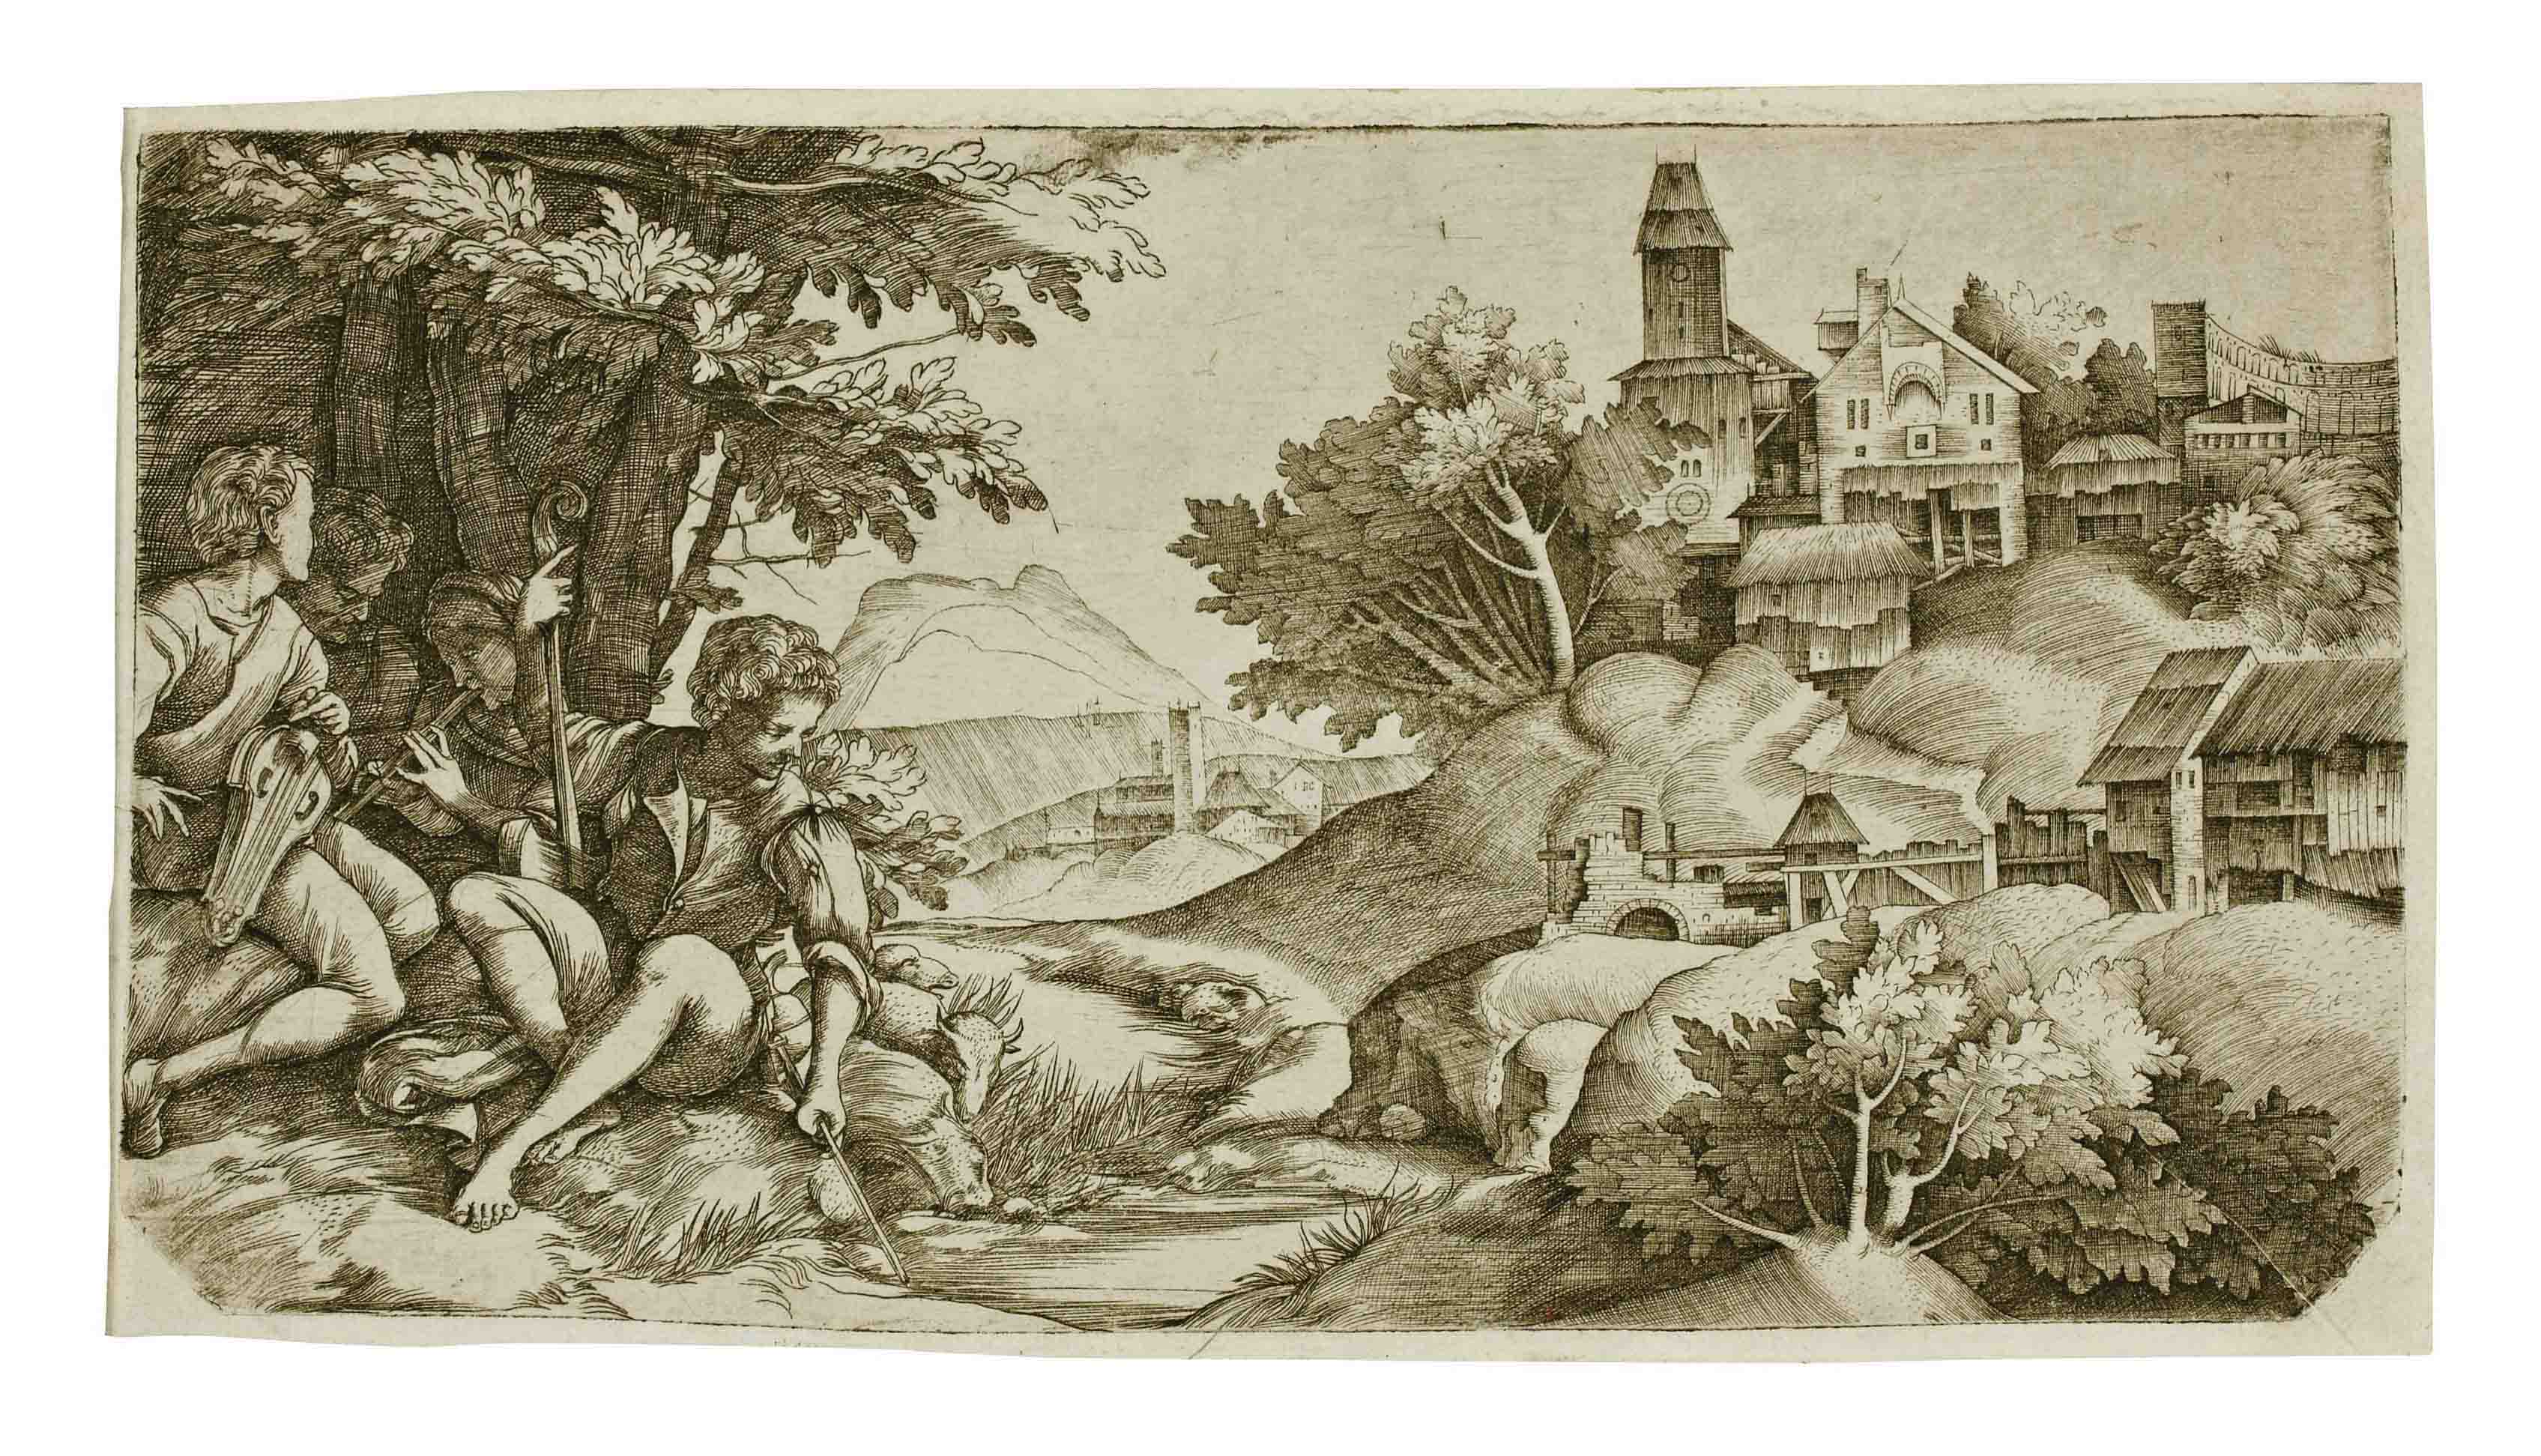 Shepherds in a Landscape (B. 9; Hind 6)